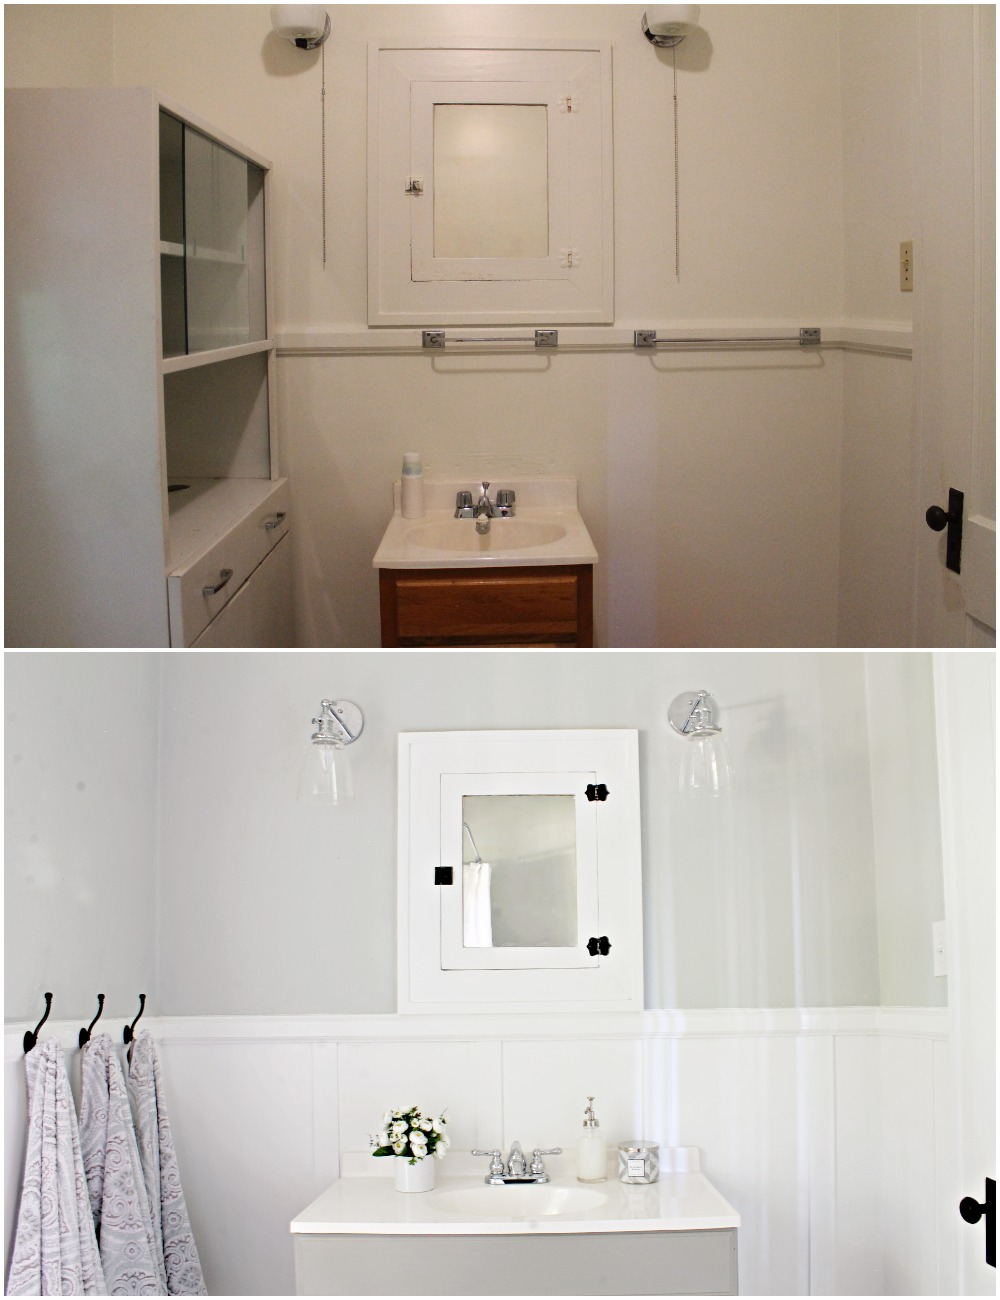 House Flipping Before and Afters - Budget Bathroom Renovation, White Gray and Blue Bath - Sherwin Williams Silver Strand 25